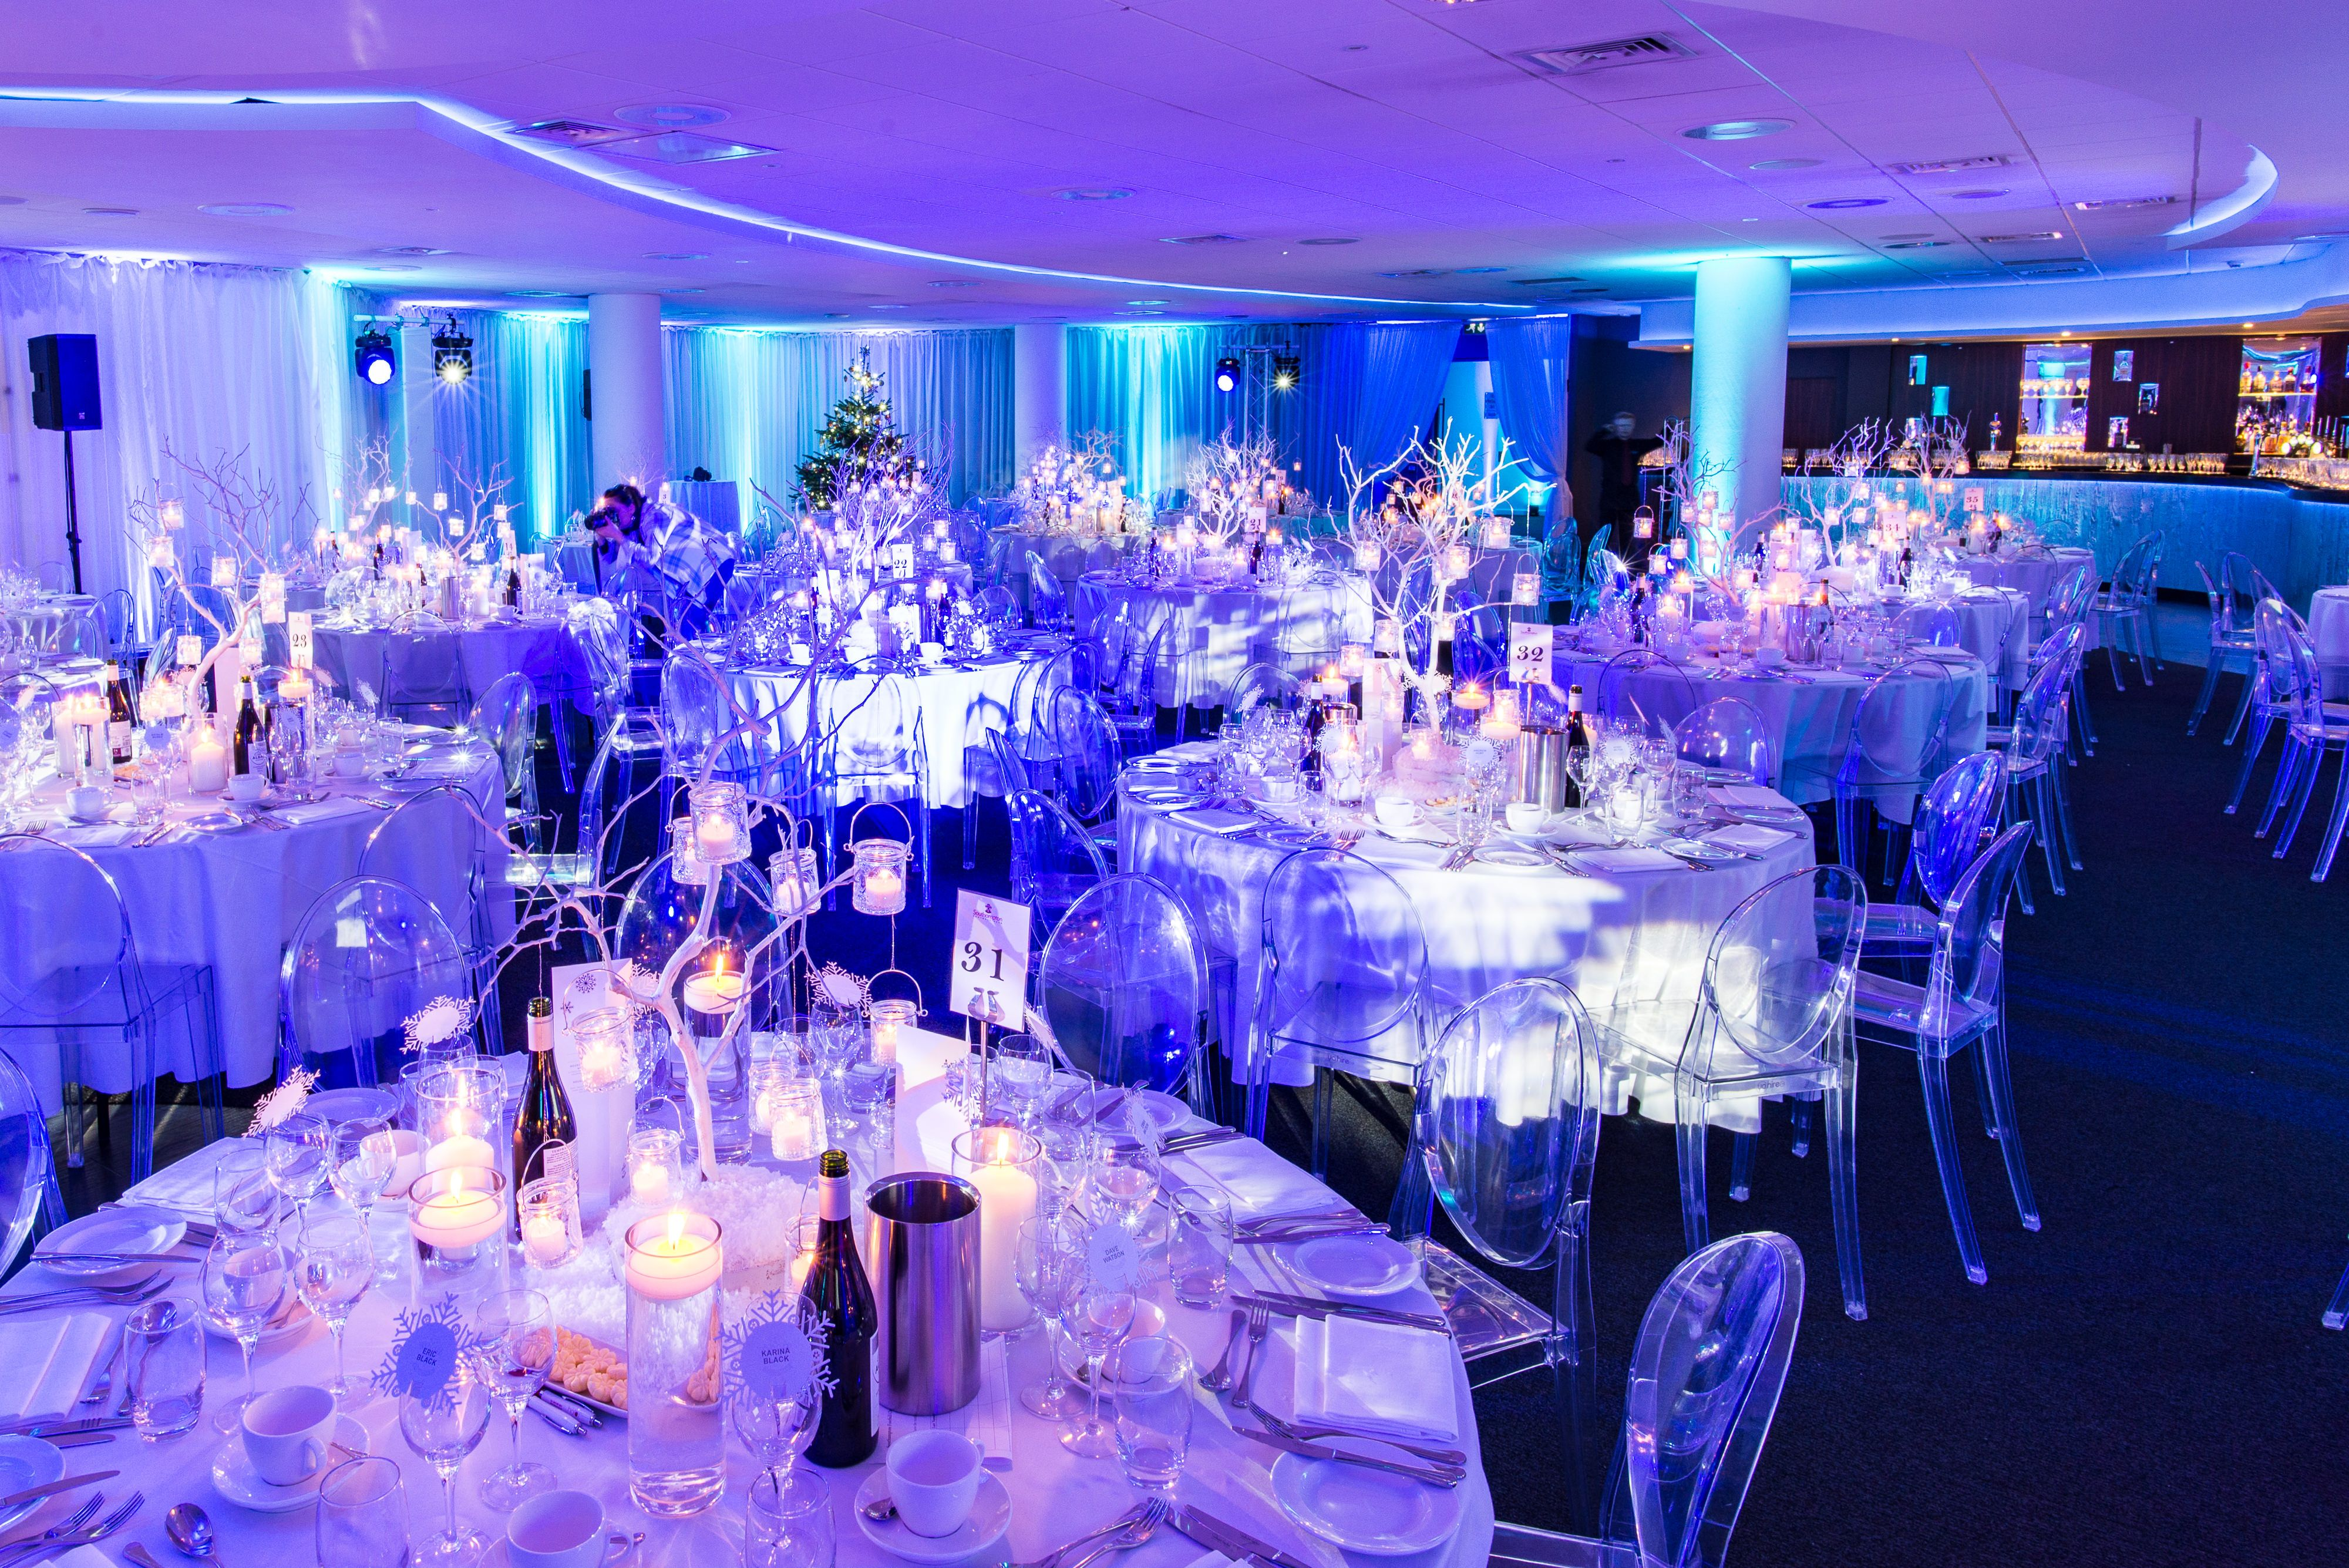 Top 10 Unique Christmas Party Entertainment Ideas Tired Of The Same Old Boring Parties That You Dread Attending Create An Event Will Be